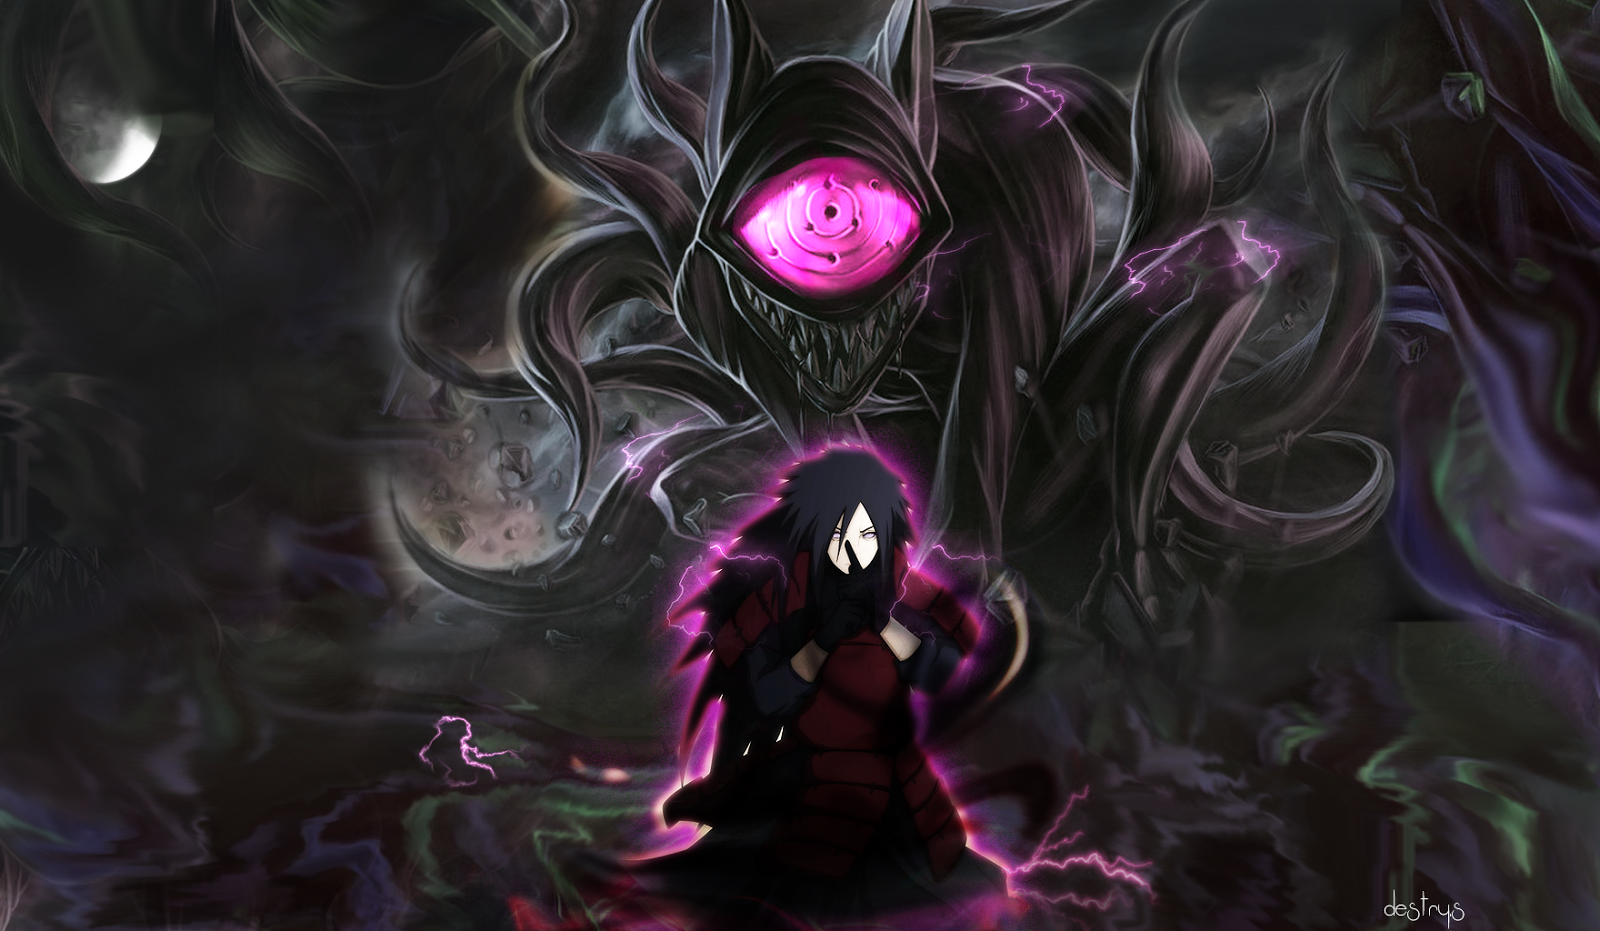 Madara Uchiha Wallpaper HD - WallpaperSafari